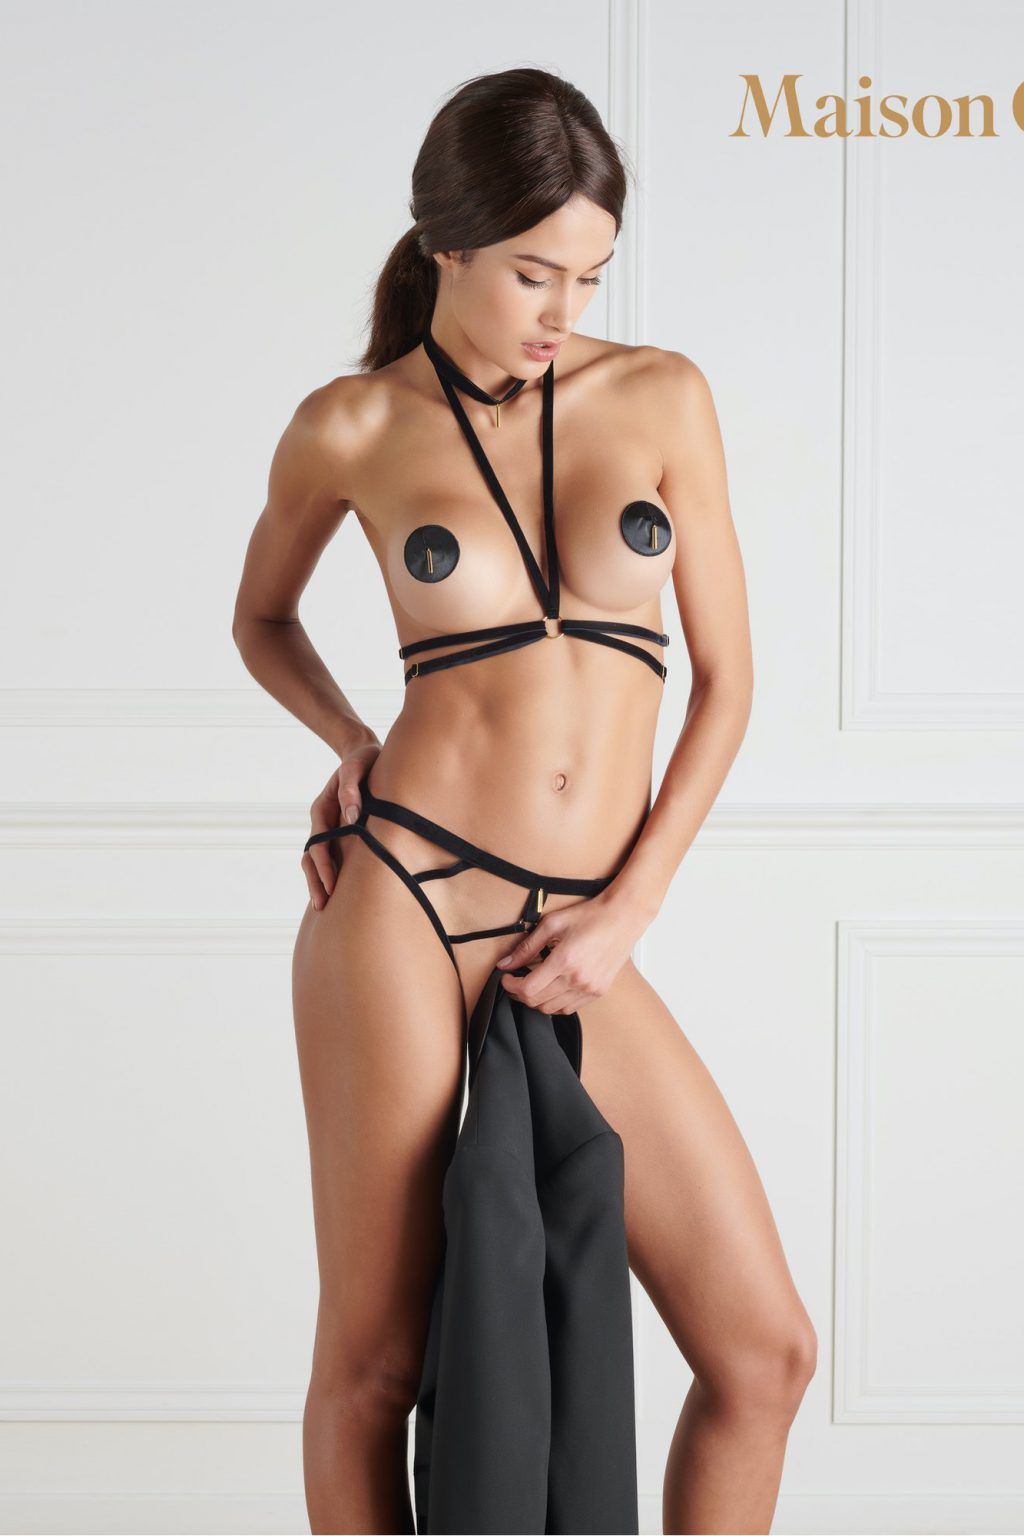 LES FETICHES - HARNESS - BLACK - ONE SIZE